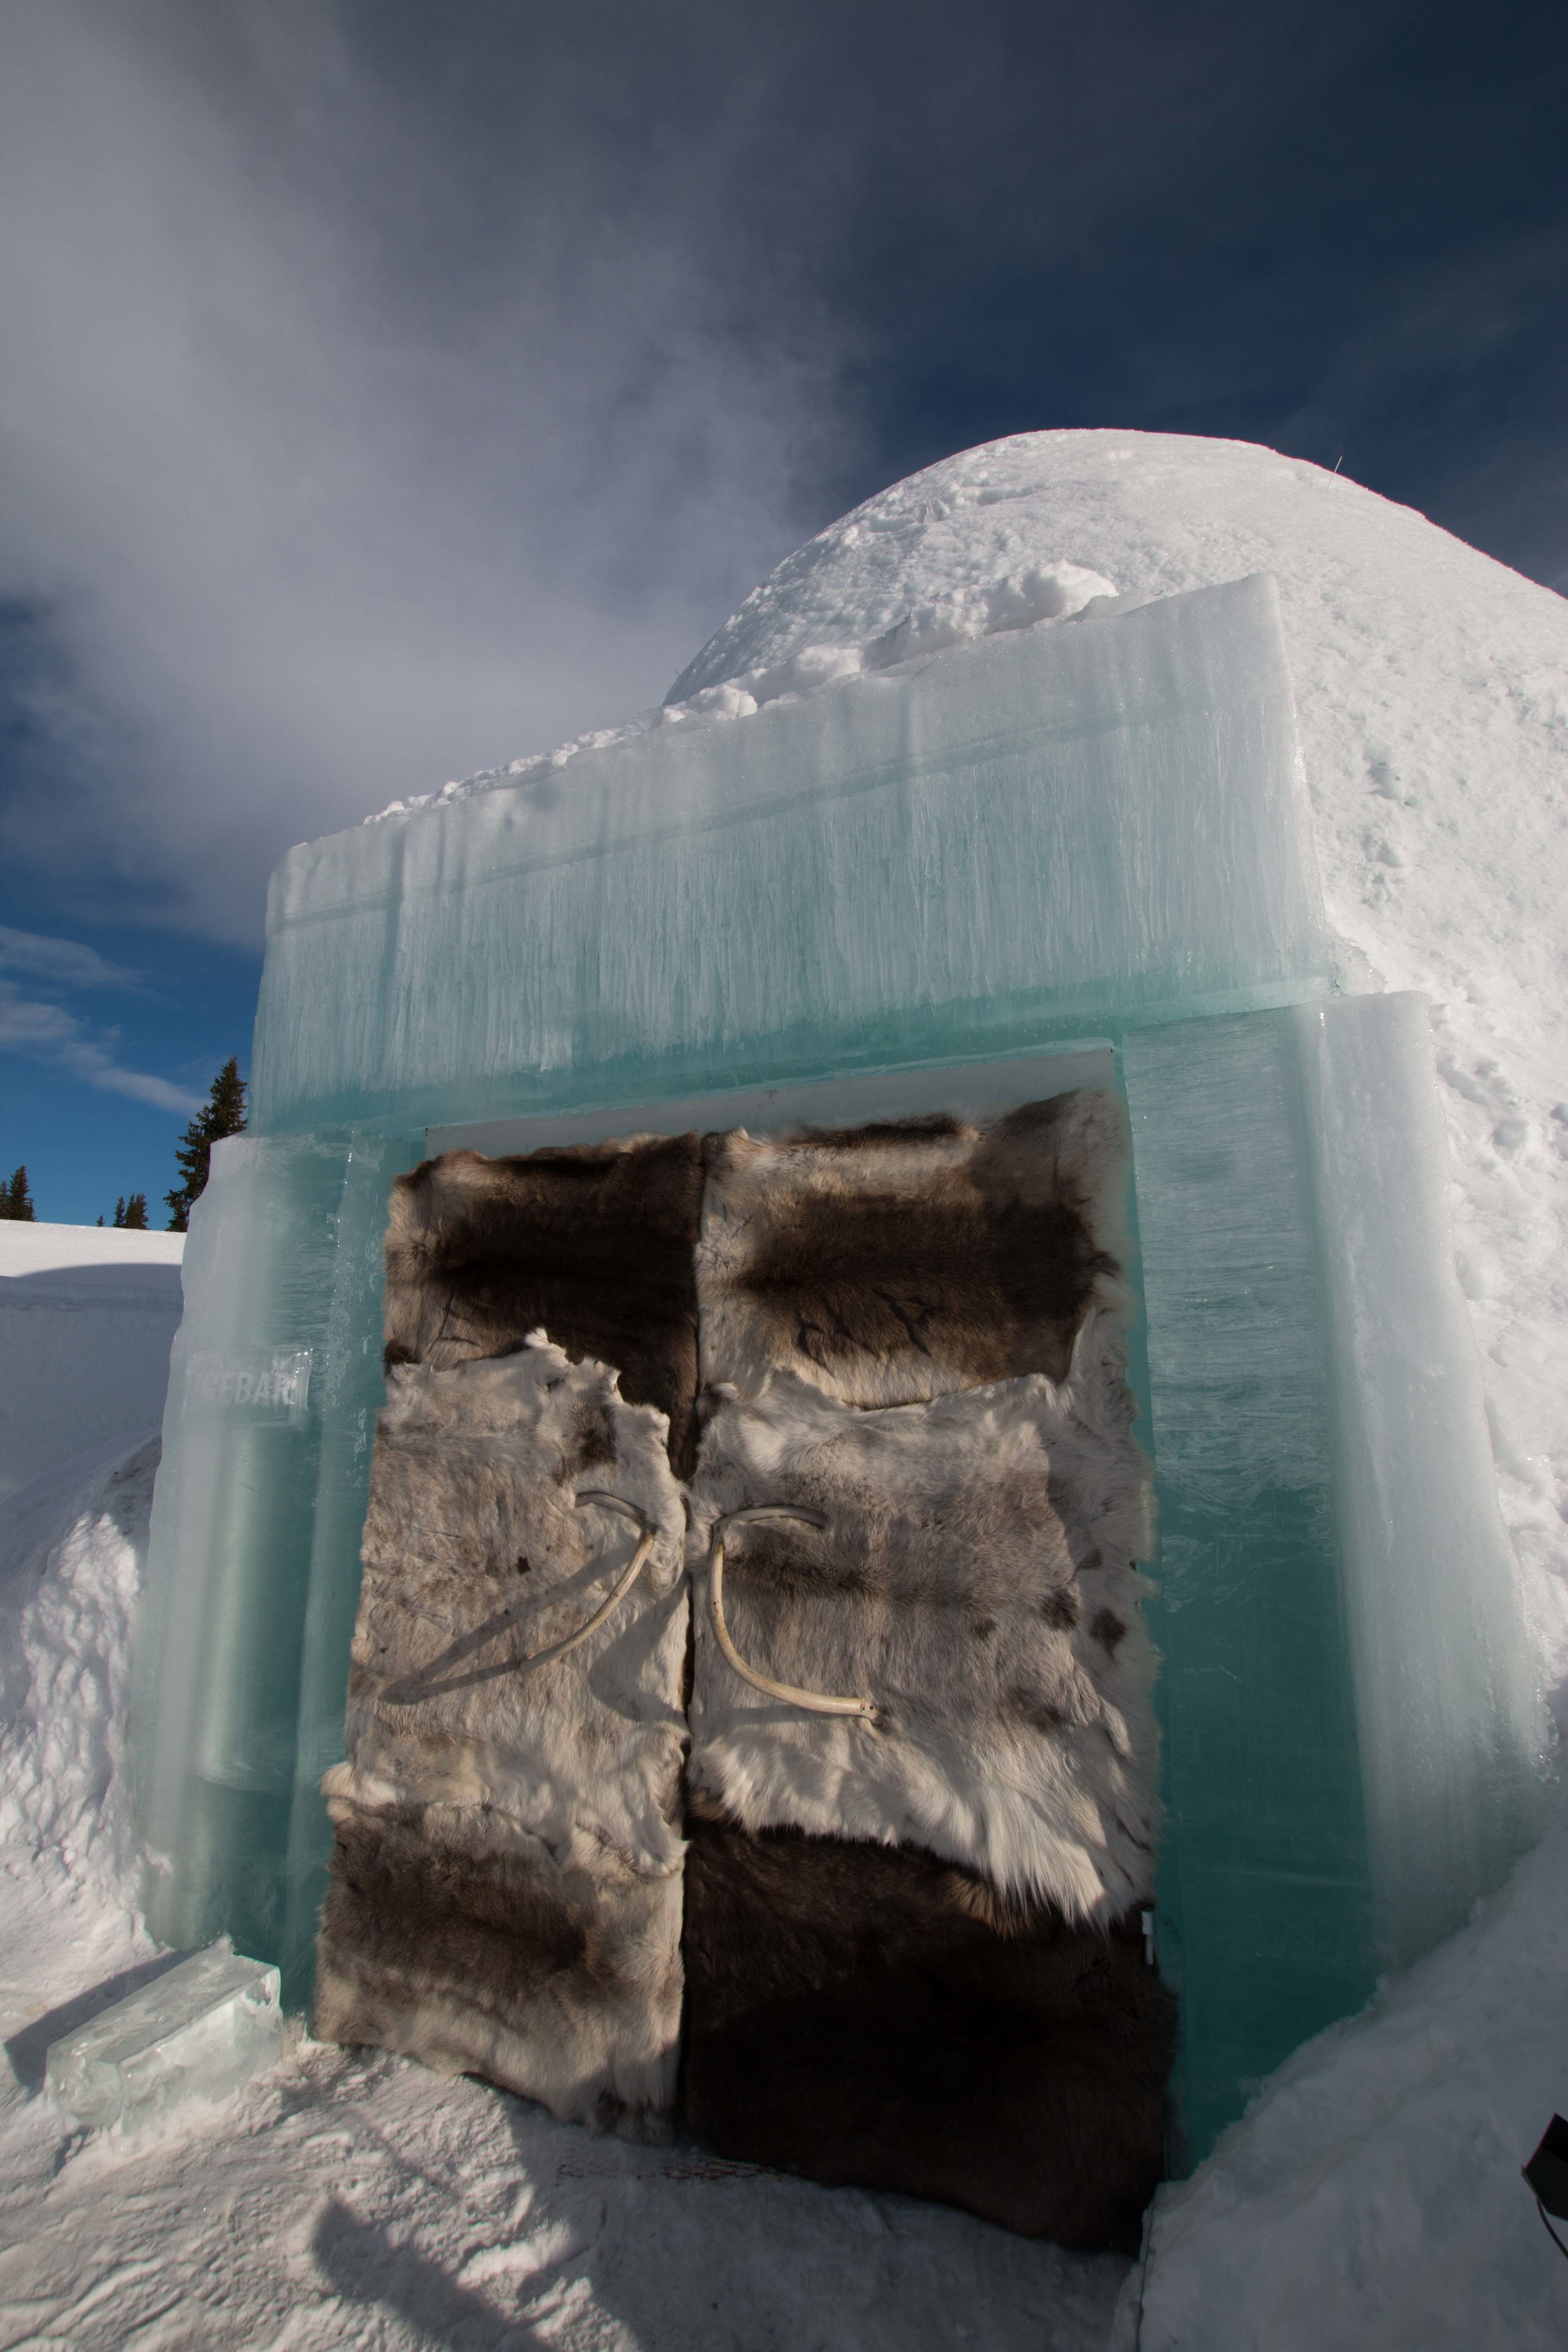 Entrance into the Ice Bar. Yes, those doors are covered in reindeer skins.